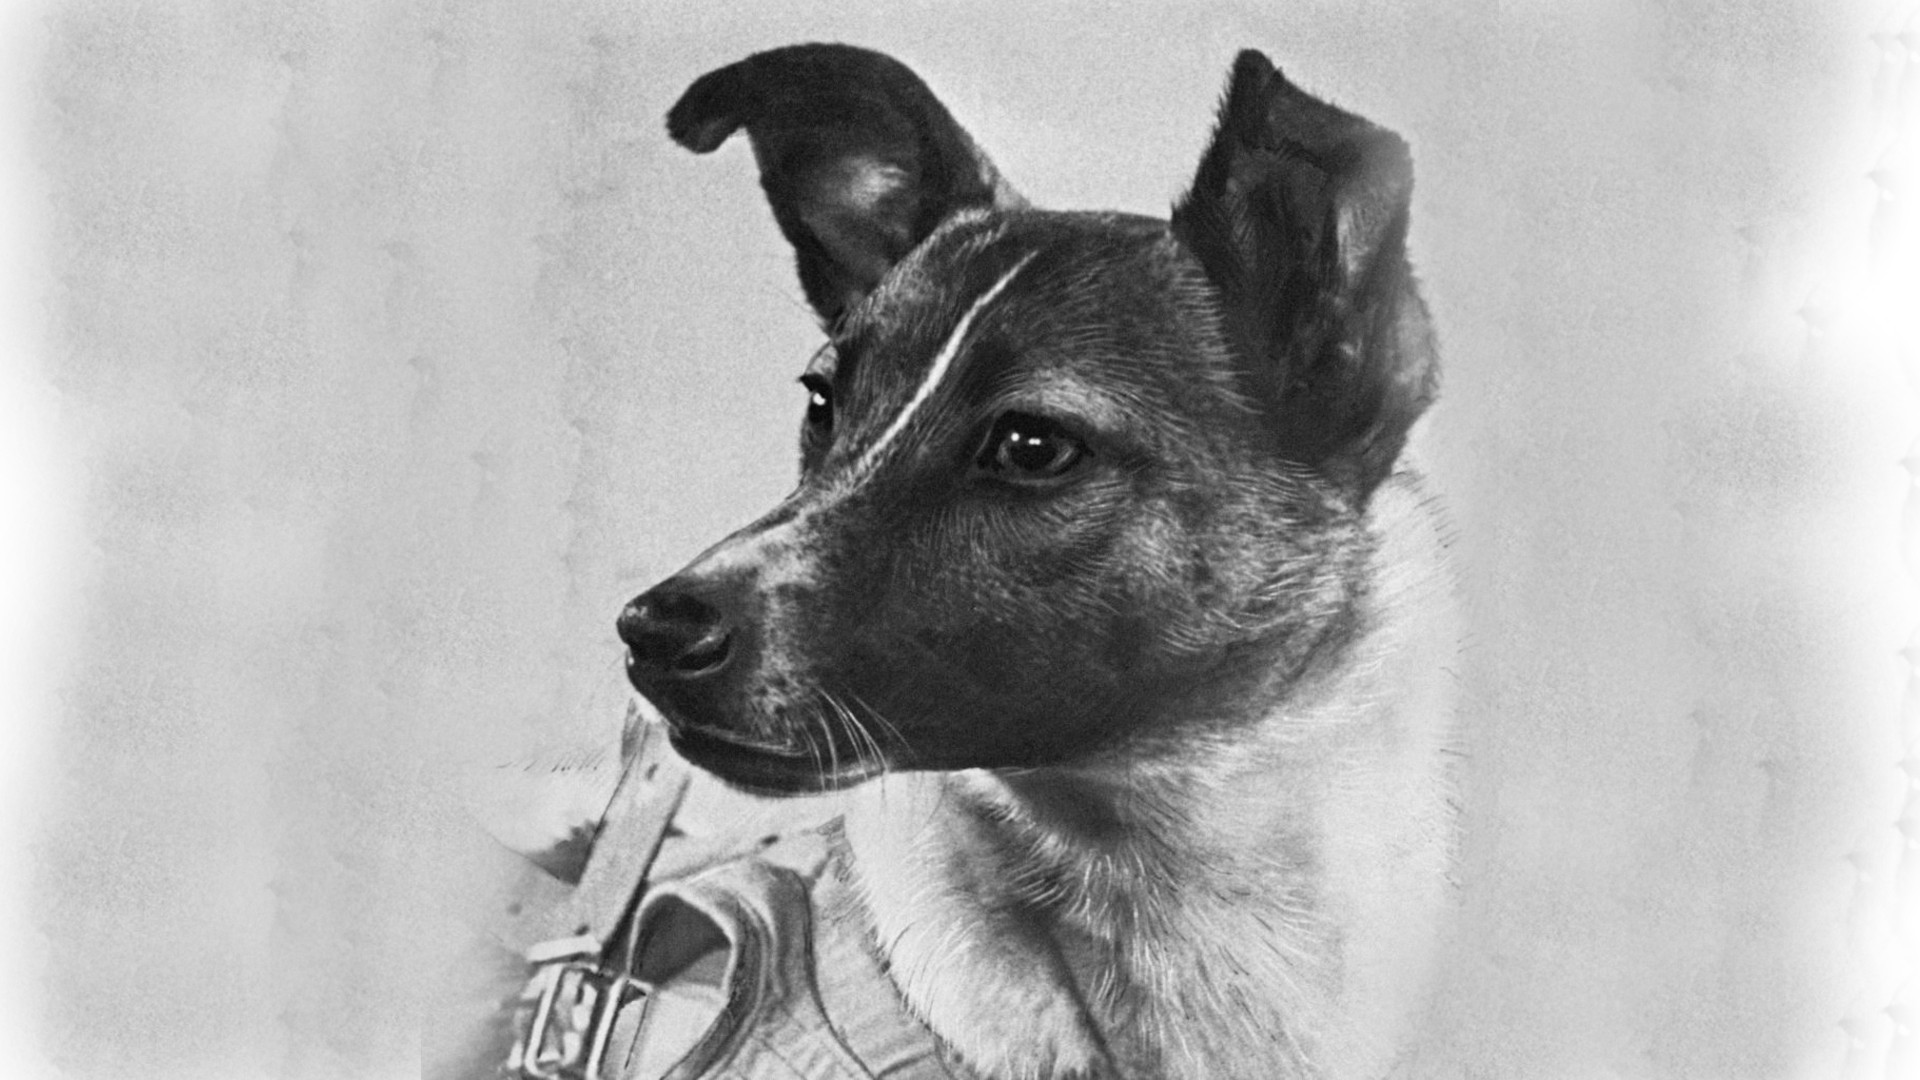 A drawing of Laika, a Soviet space dog and the first animal to successfully orbit the Earth.